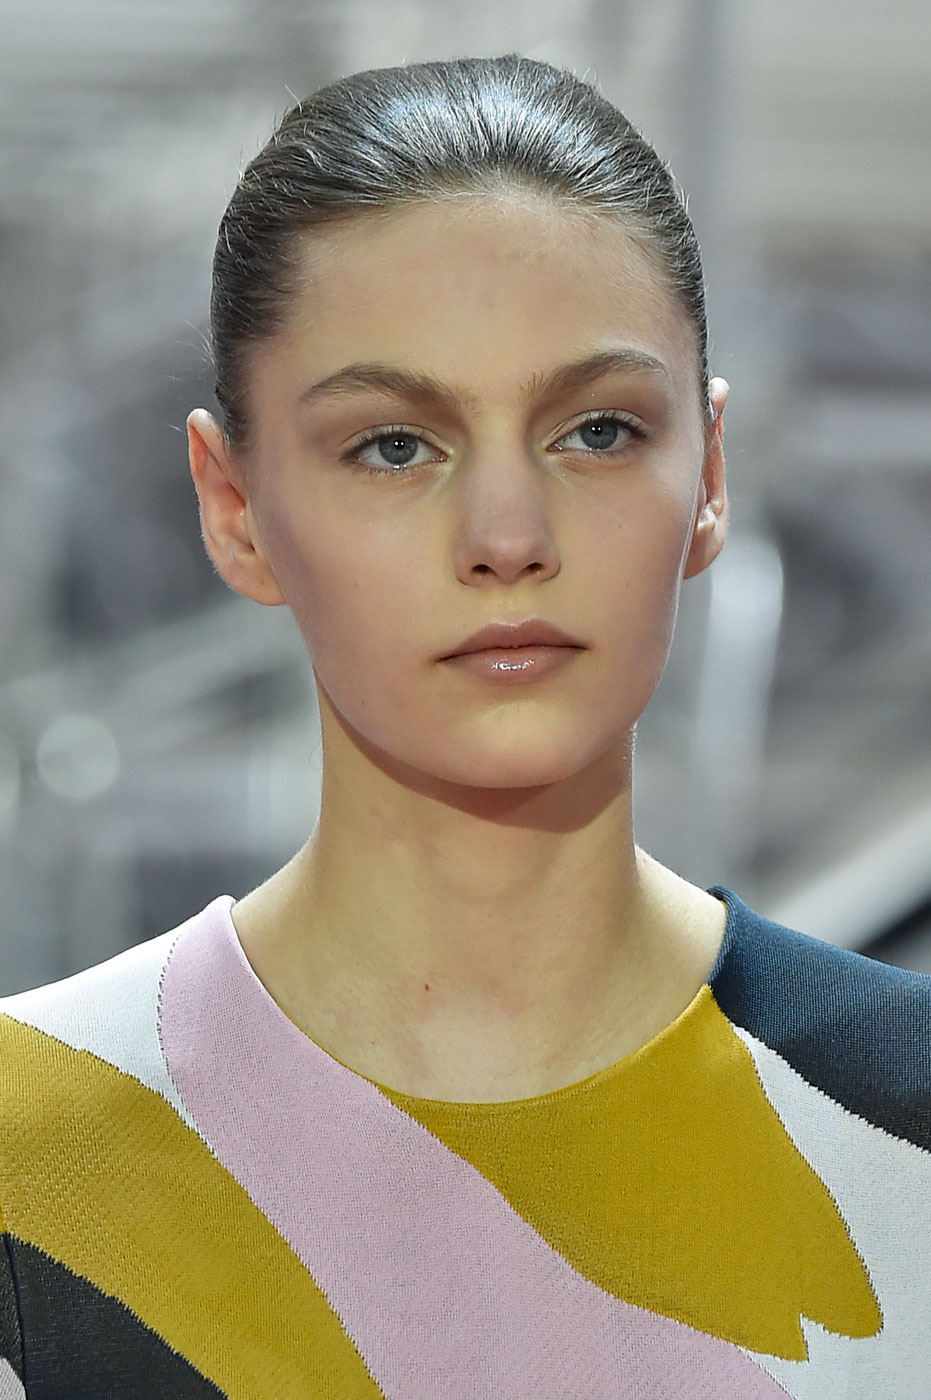 Christian-Dior-fashion-runway-show-close-ups-haute-couture-paris-spring-summer-2015-the-impression-047